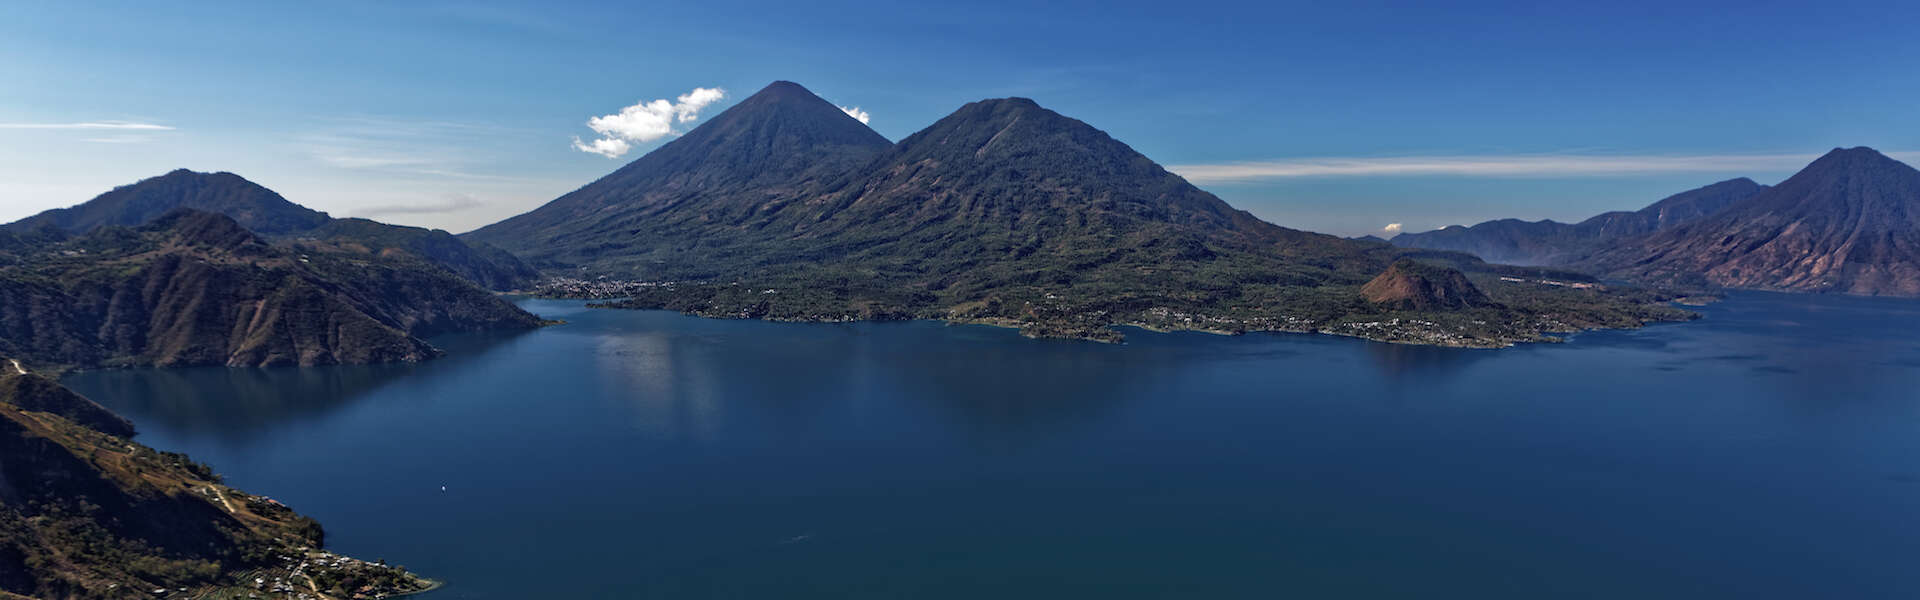 Saving Lake Atitlán: Women-Focused Business Provides Clean Water – and Good Jobs, on NextBillion.net